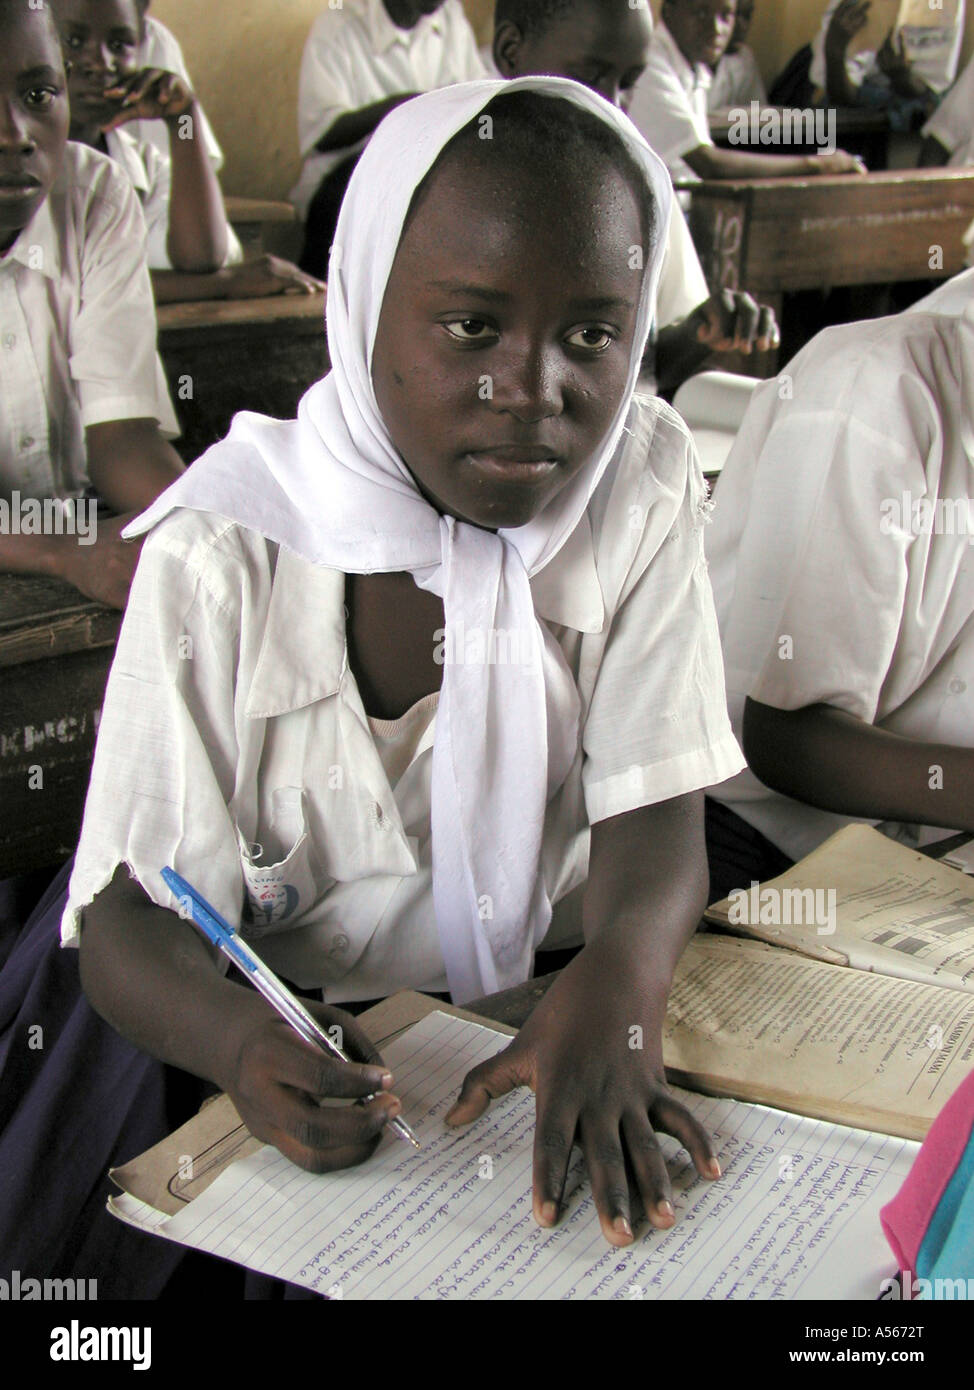 Painet iy7667 tanzania moslem girl mtakuju secondary school daressalaam country developing nation less economically - Stock Image